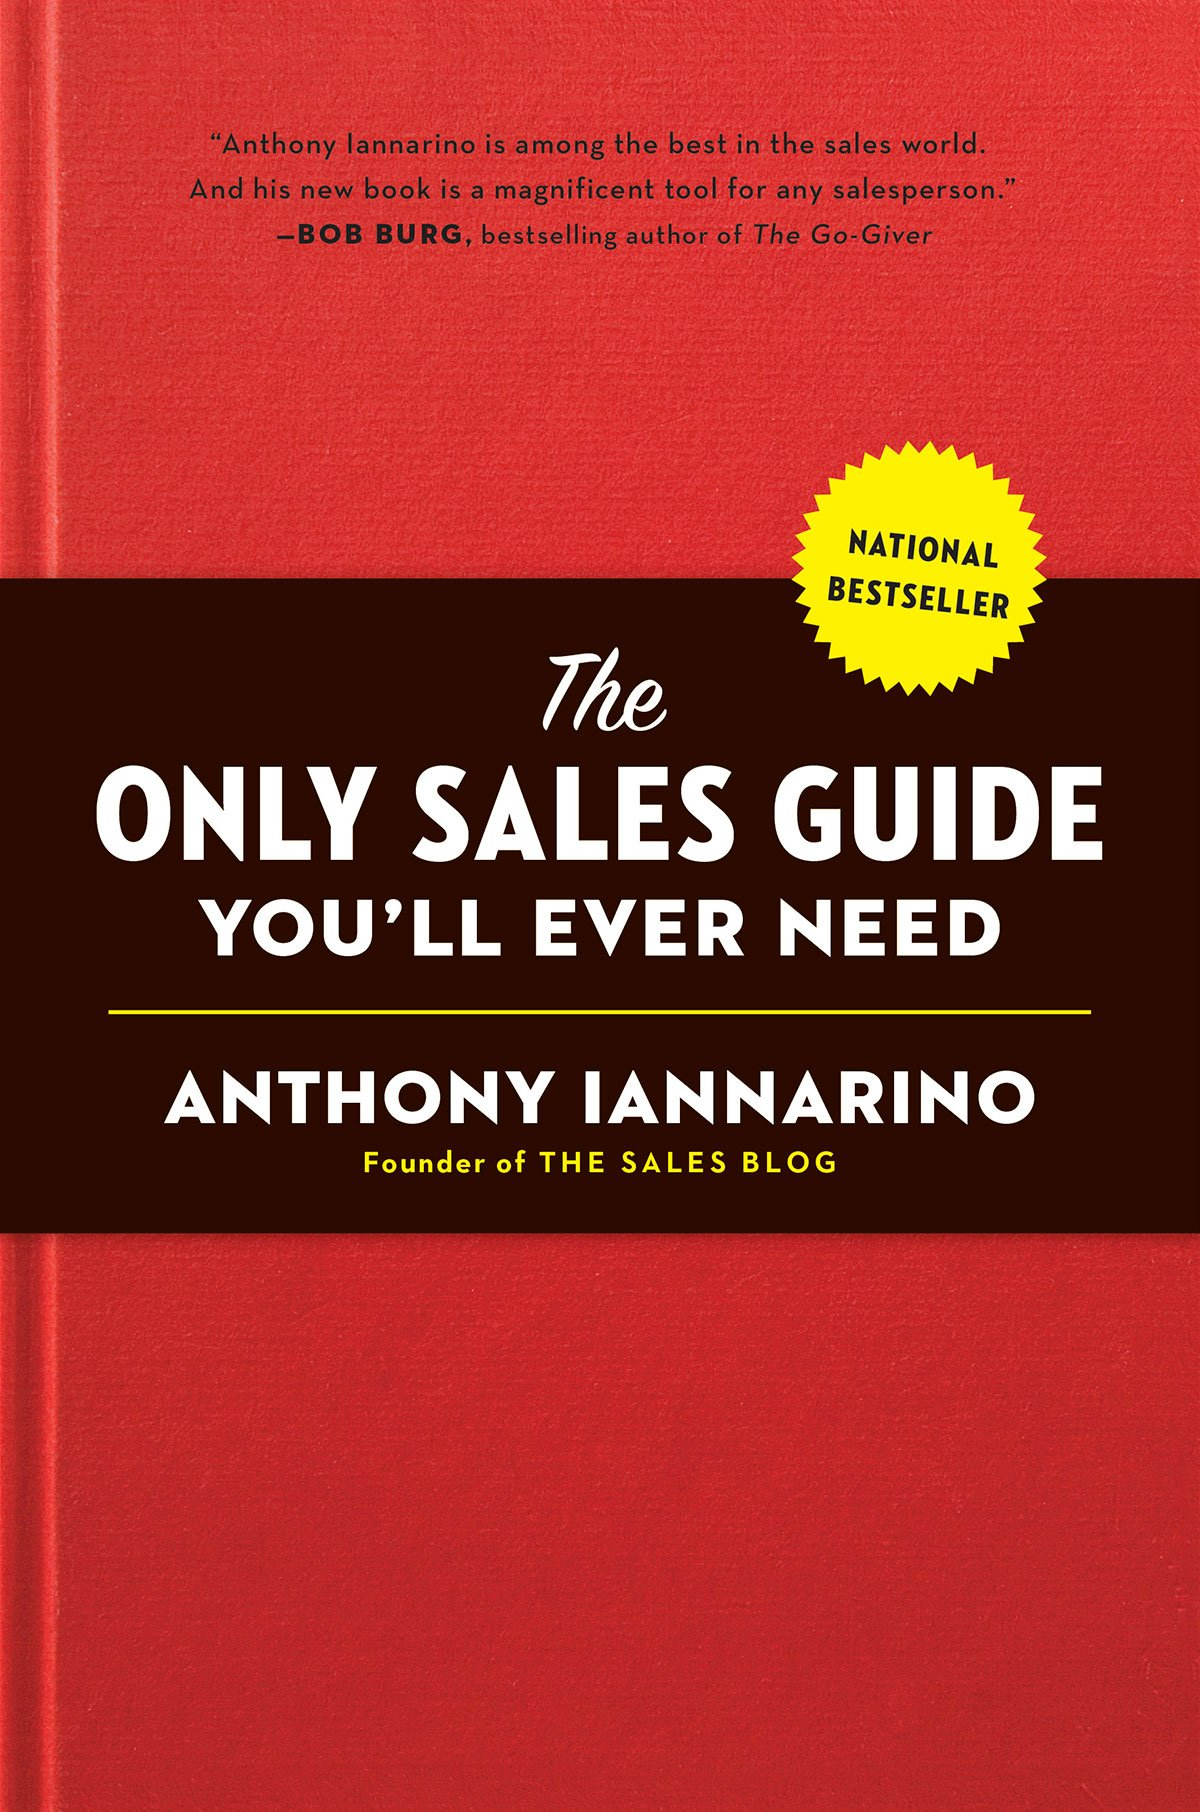 The Only Sales Guide book cover